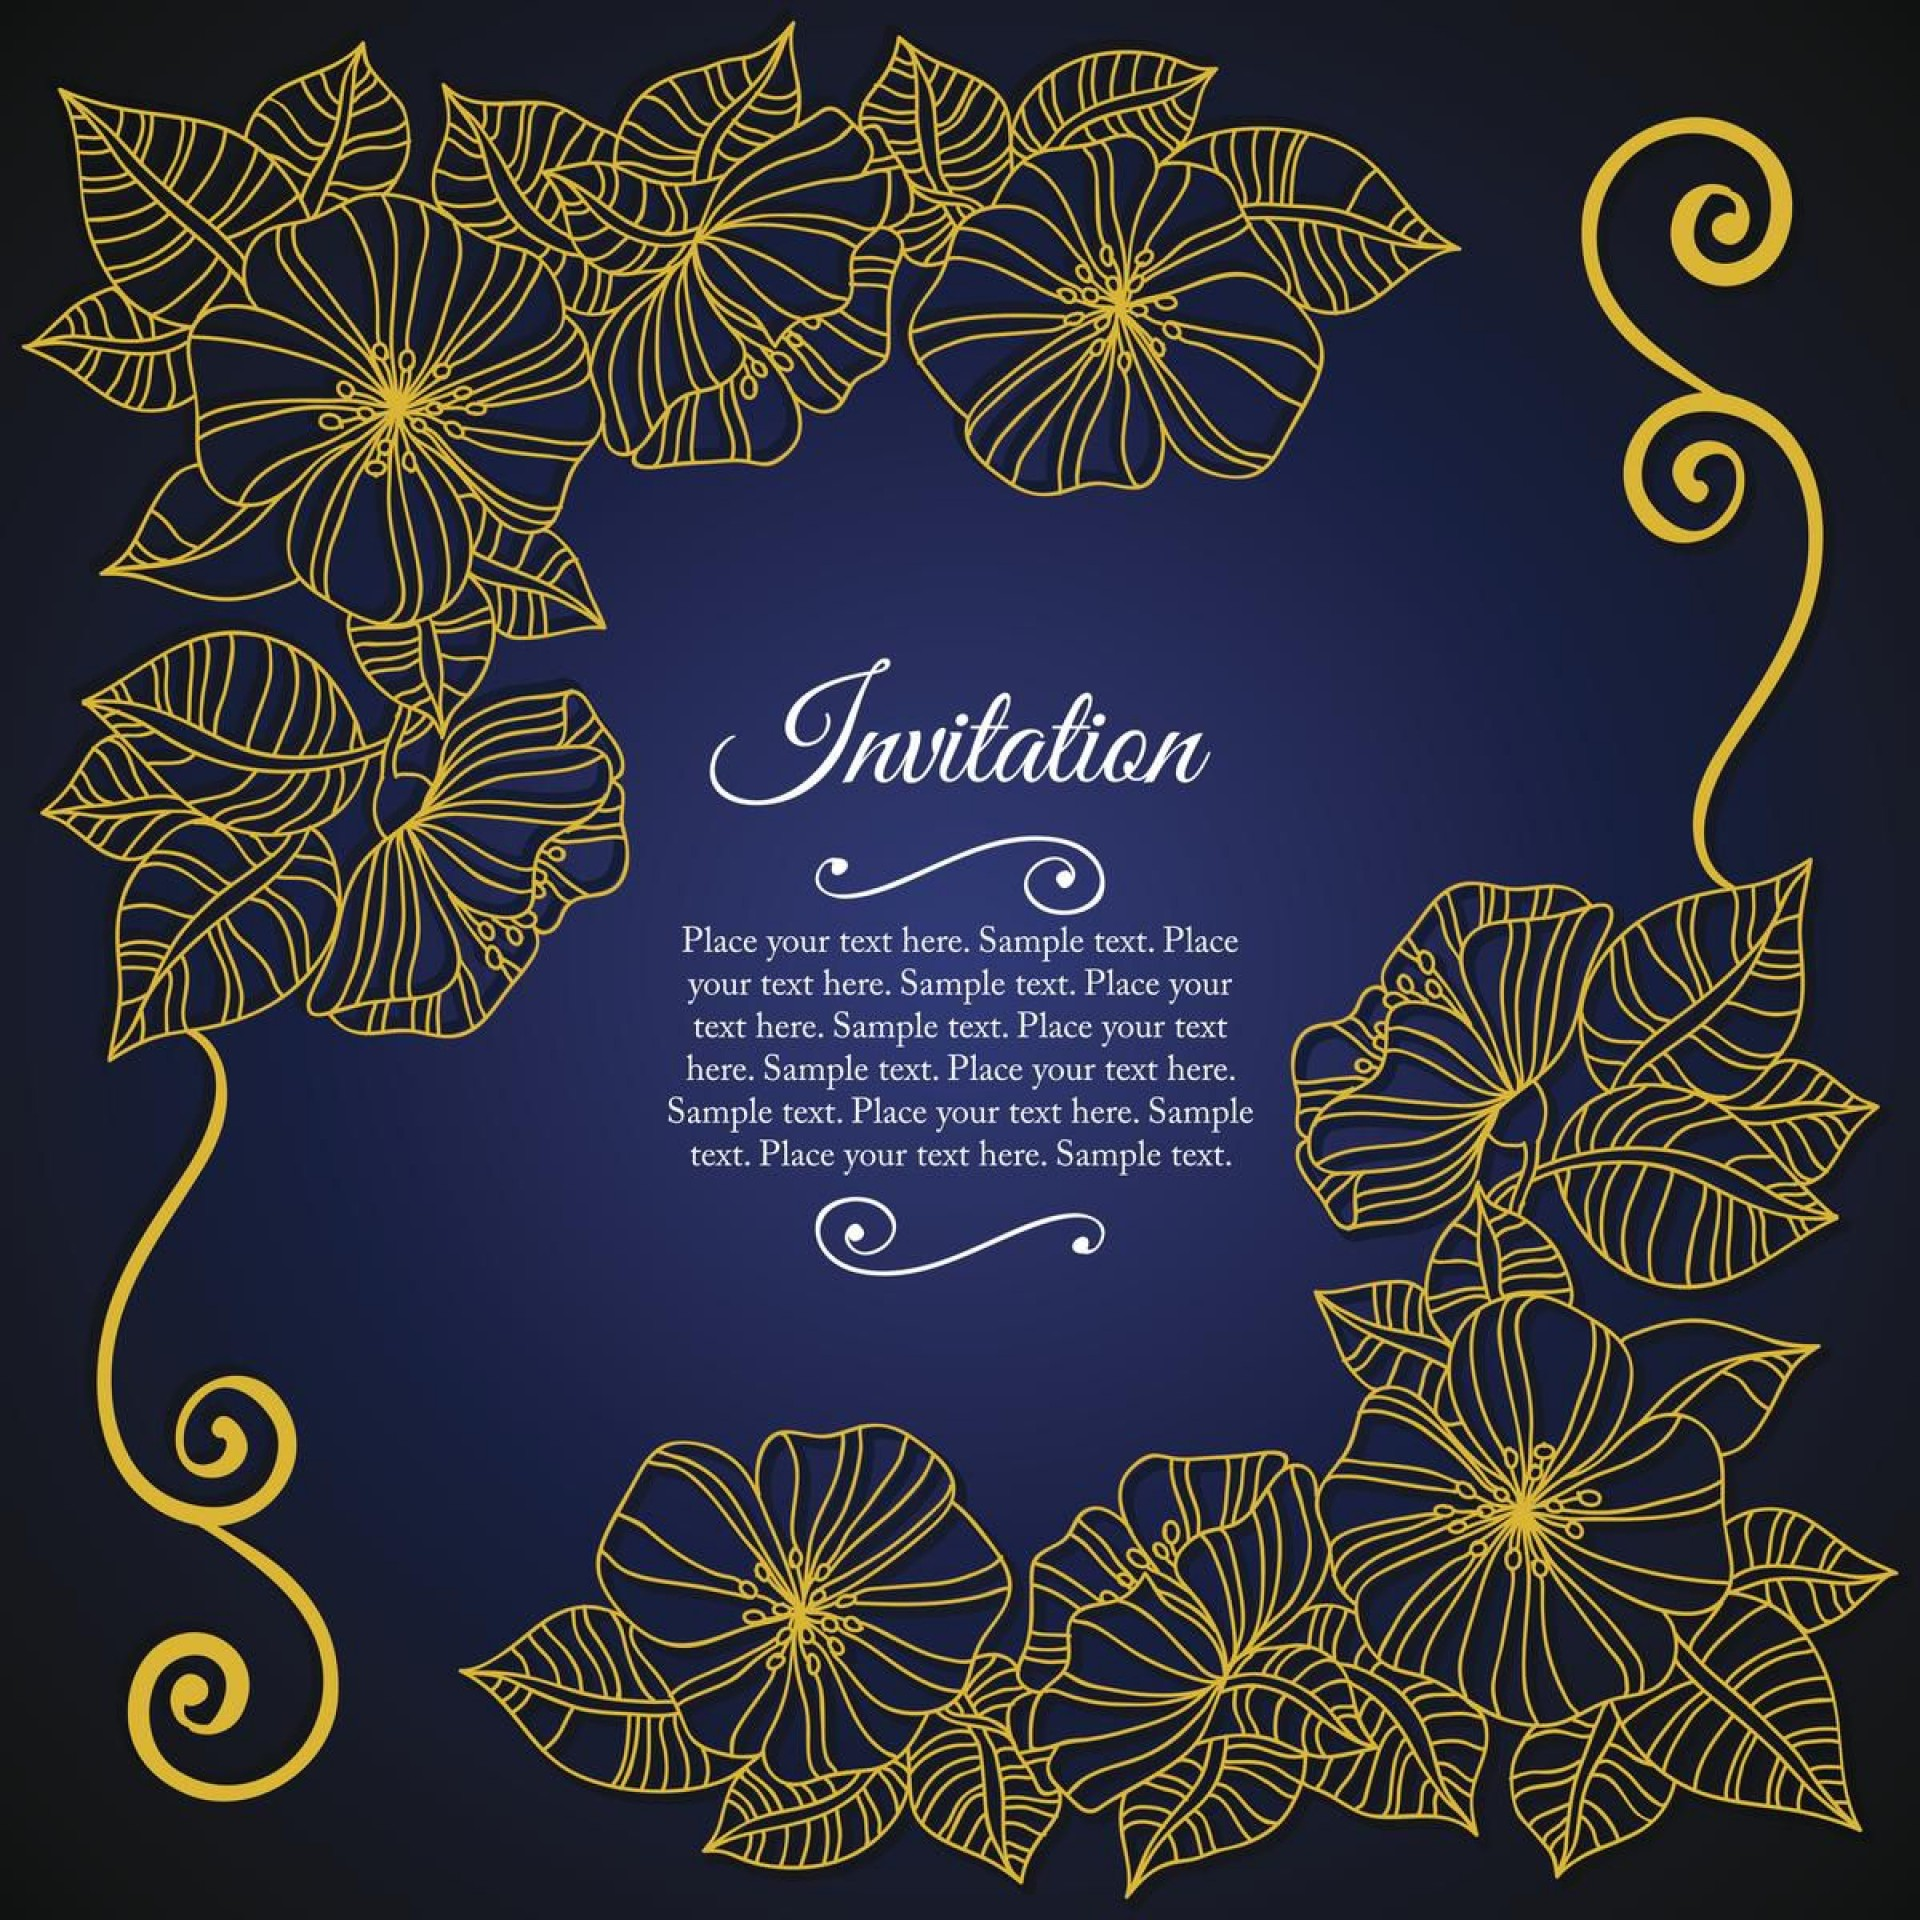 004 Outstanding 50th Wedding Anniversary Invitation Card Sample Highest Quality  Wording1920